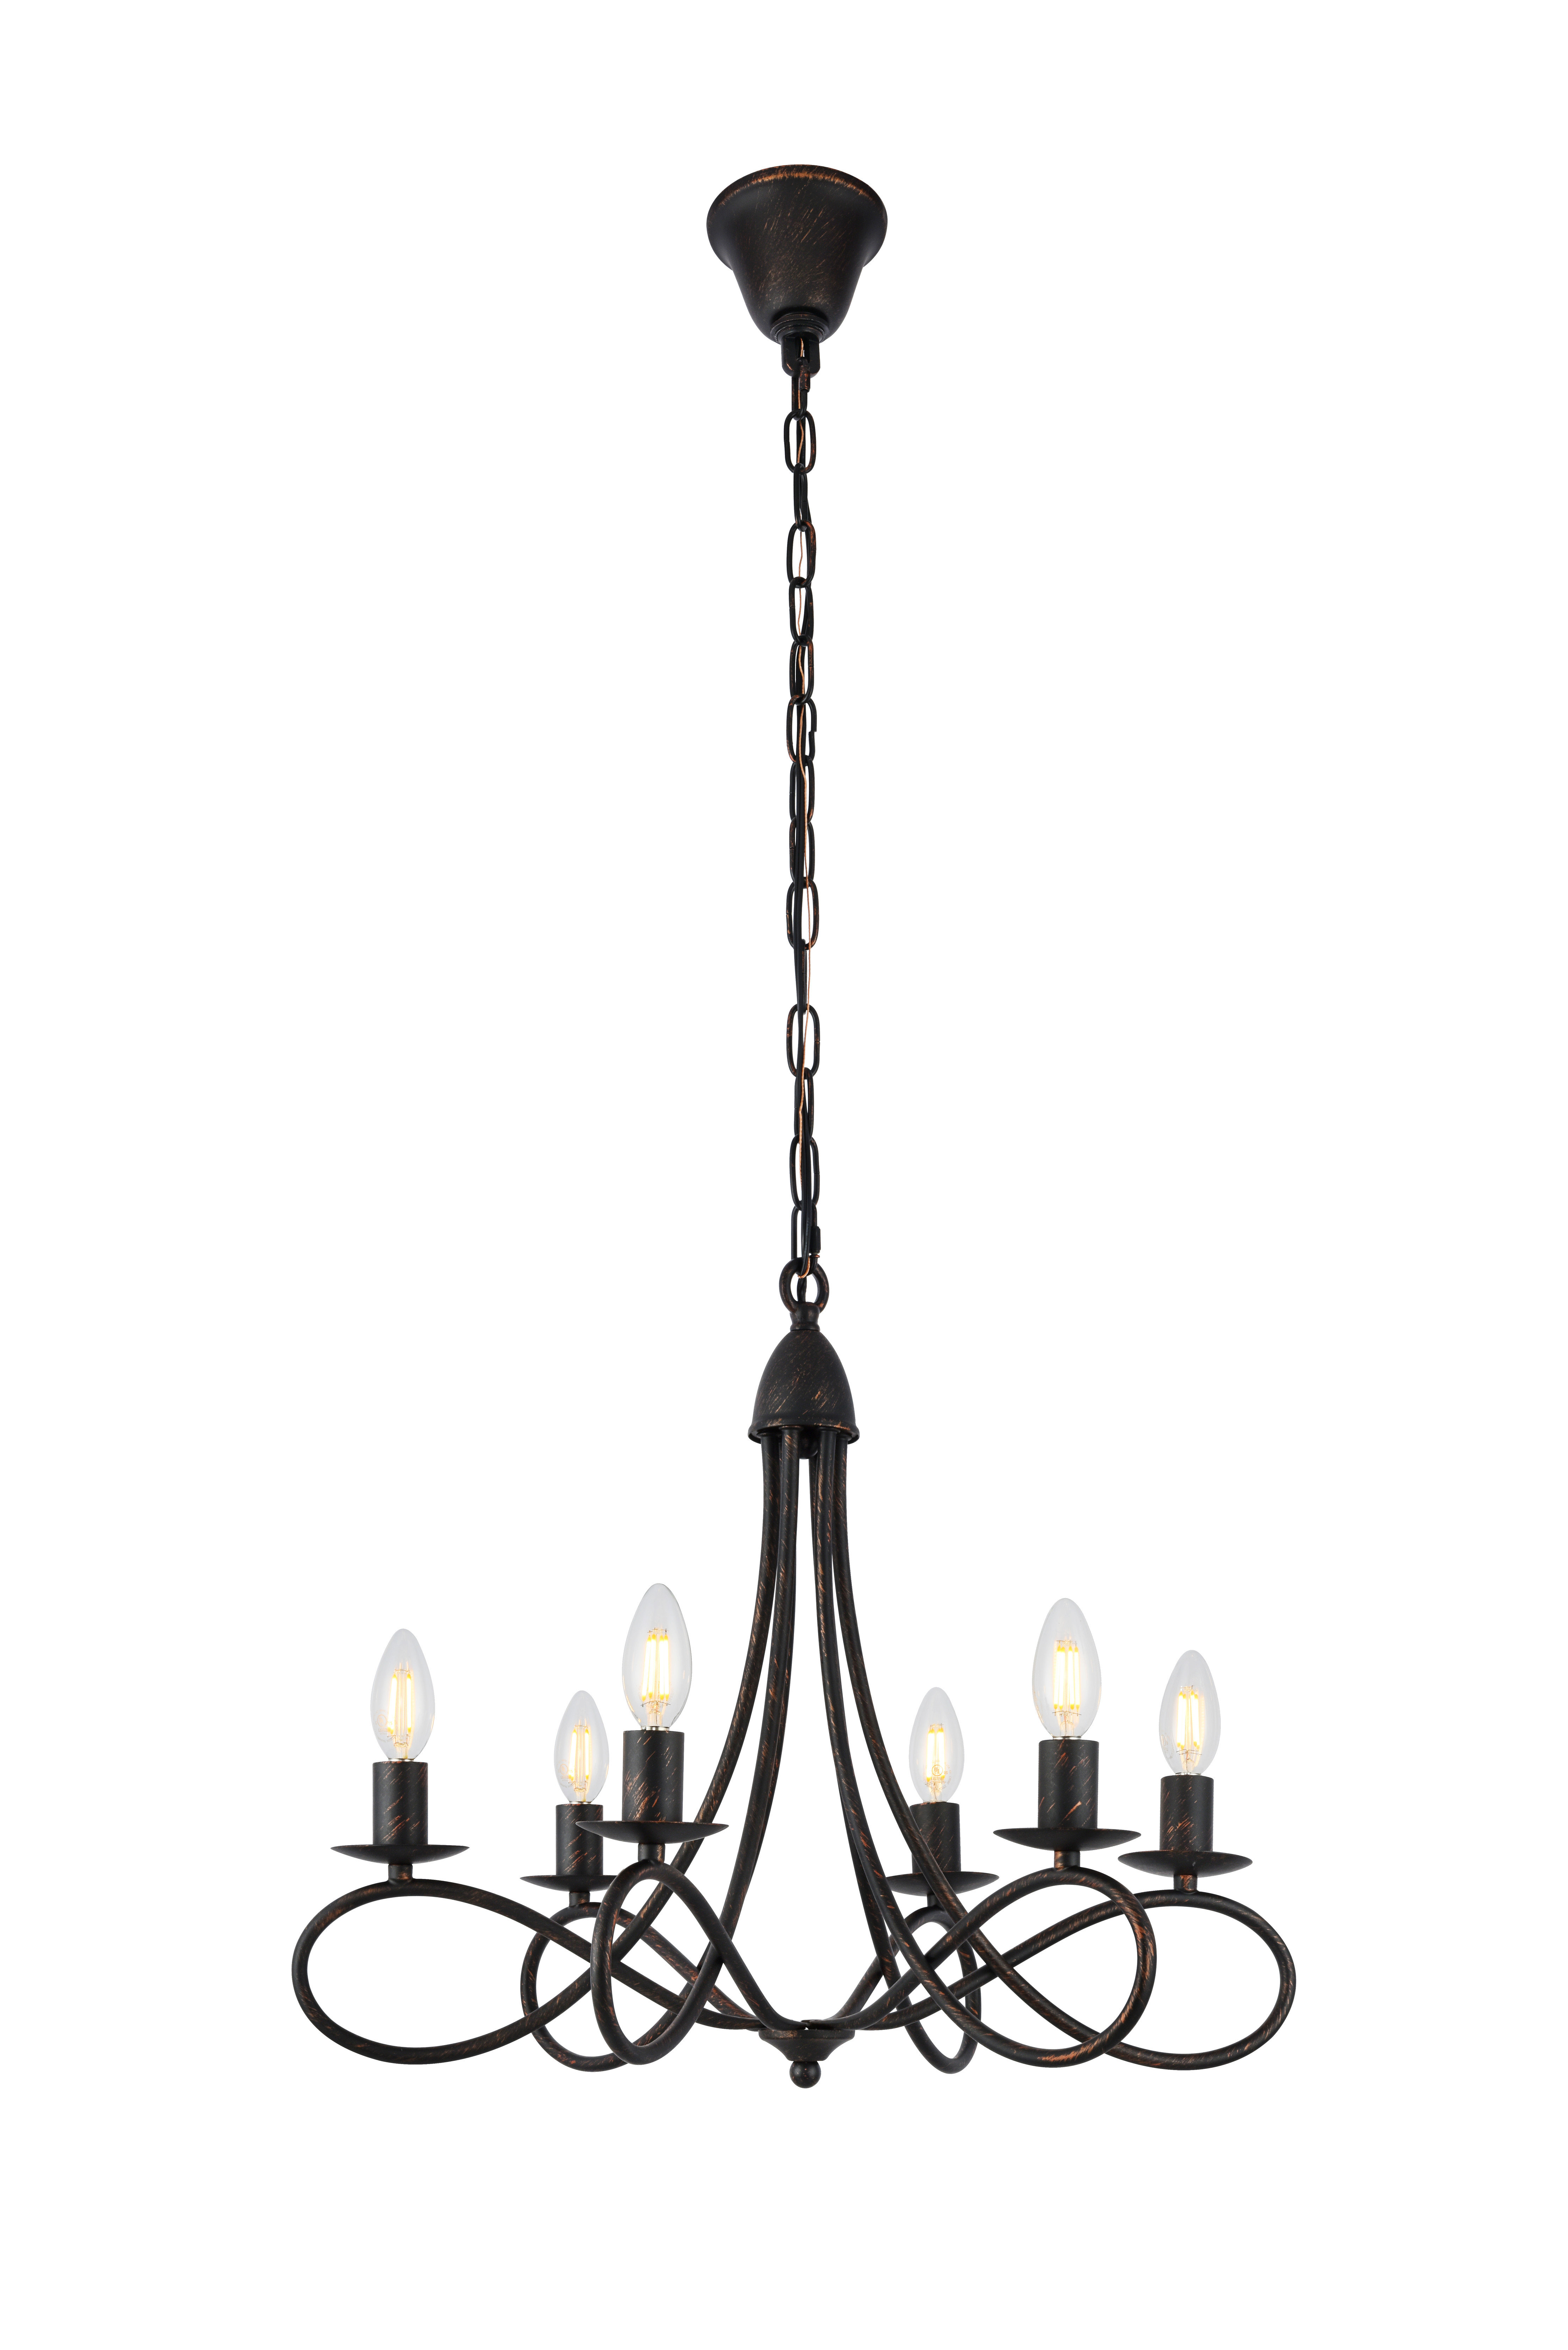 Farmhouse Chandeliers | Birch Lane Regarding Wadlington 6 Light Single Cylinder Pendants (View 13 of 30)